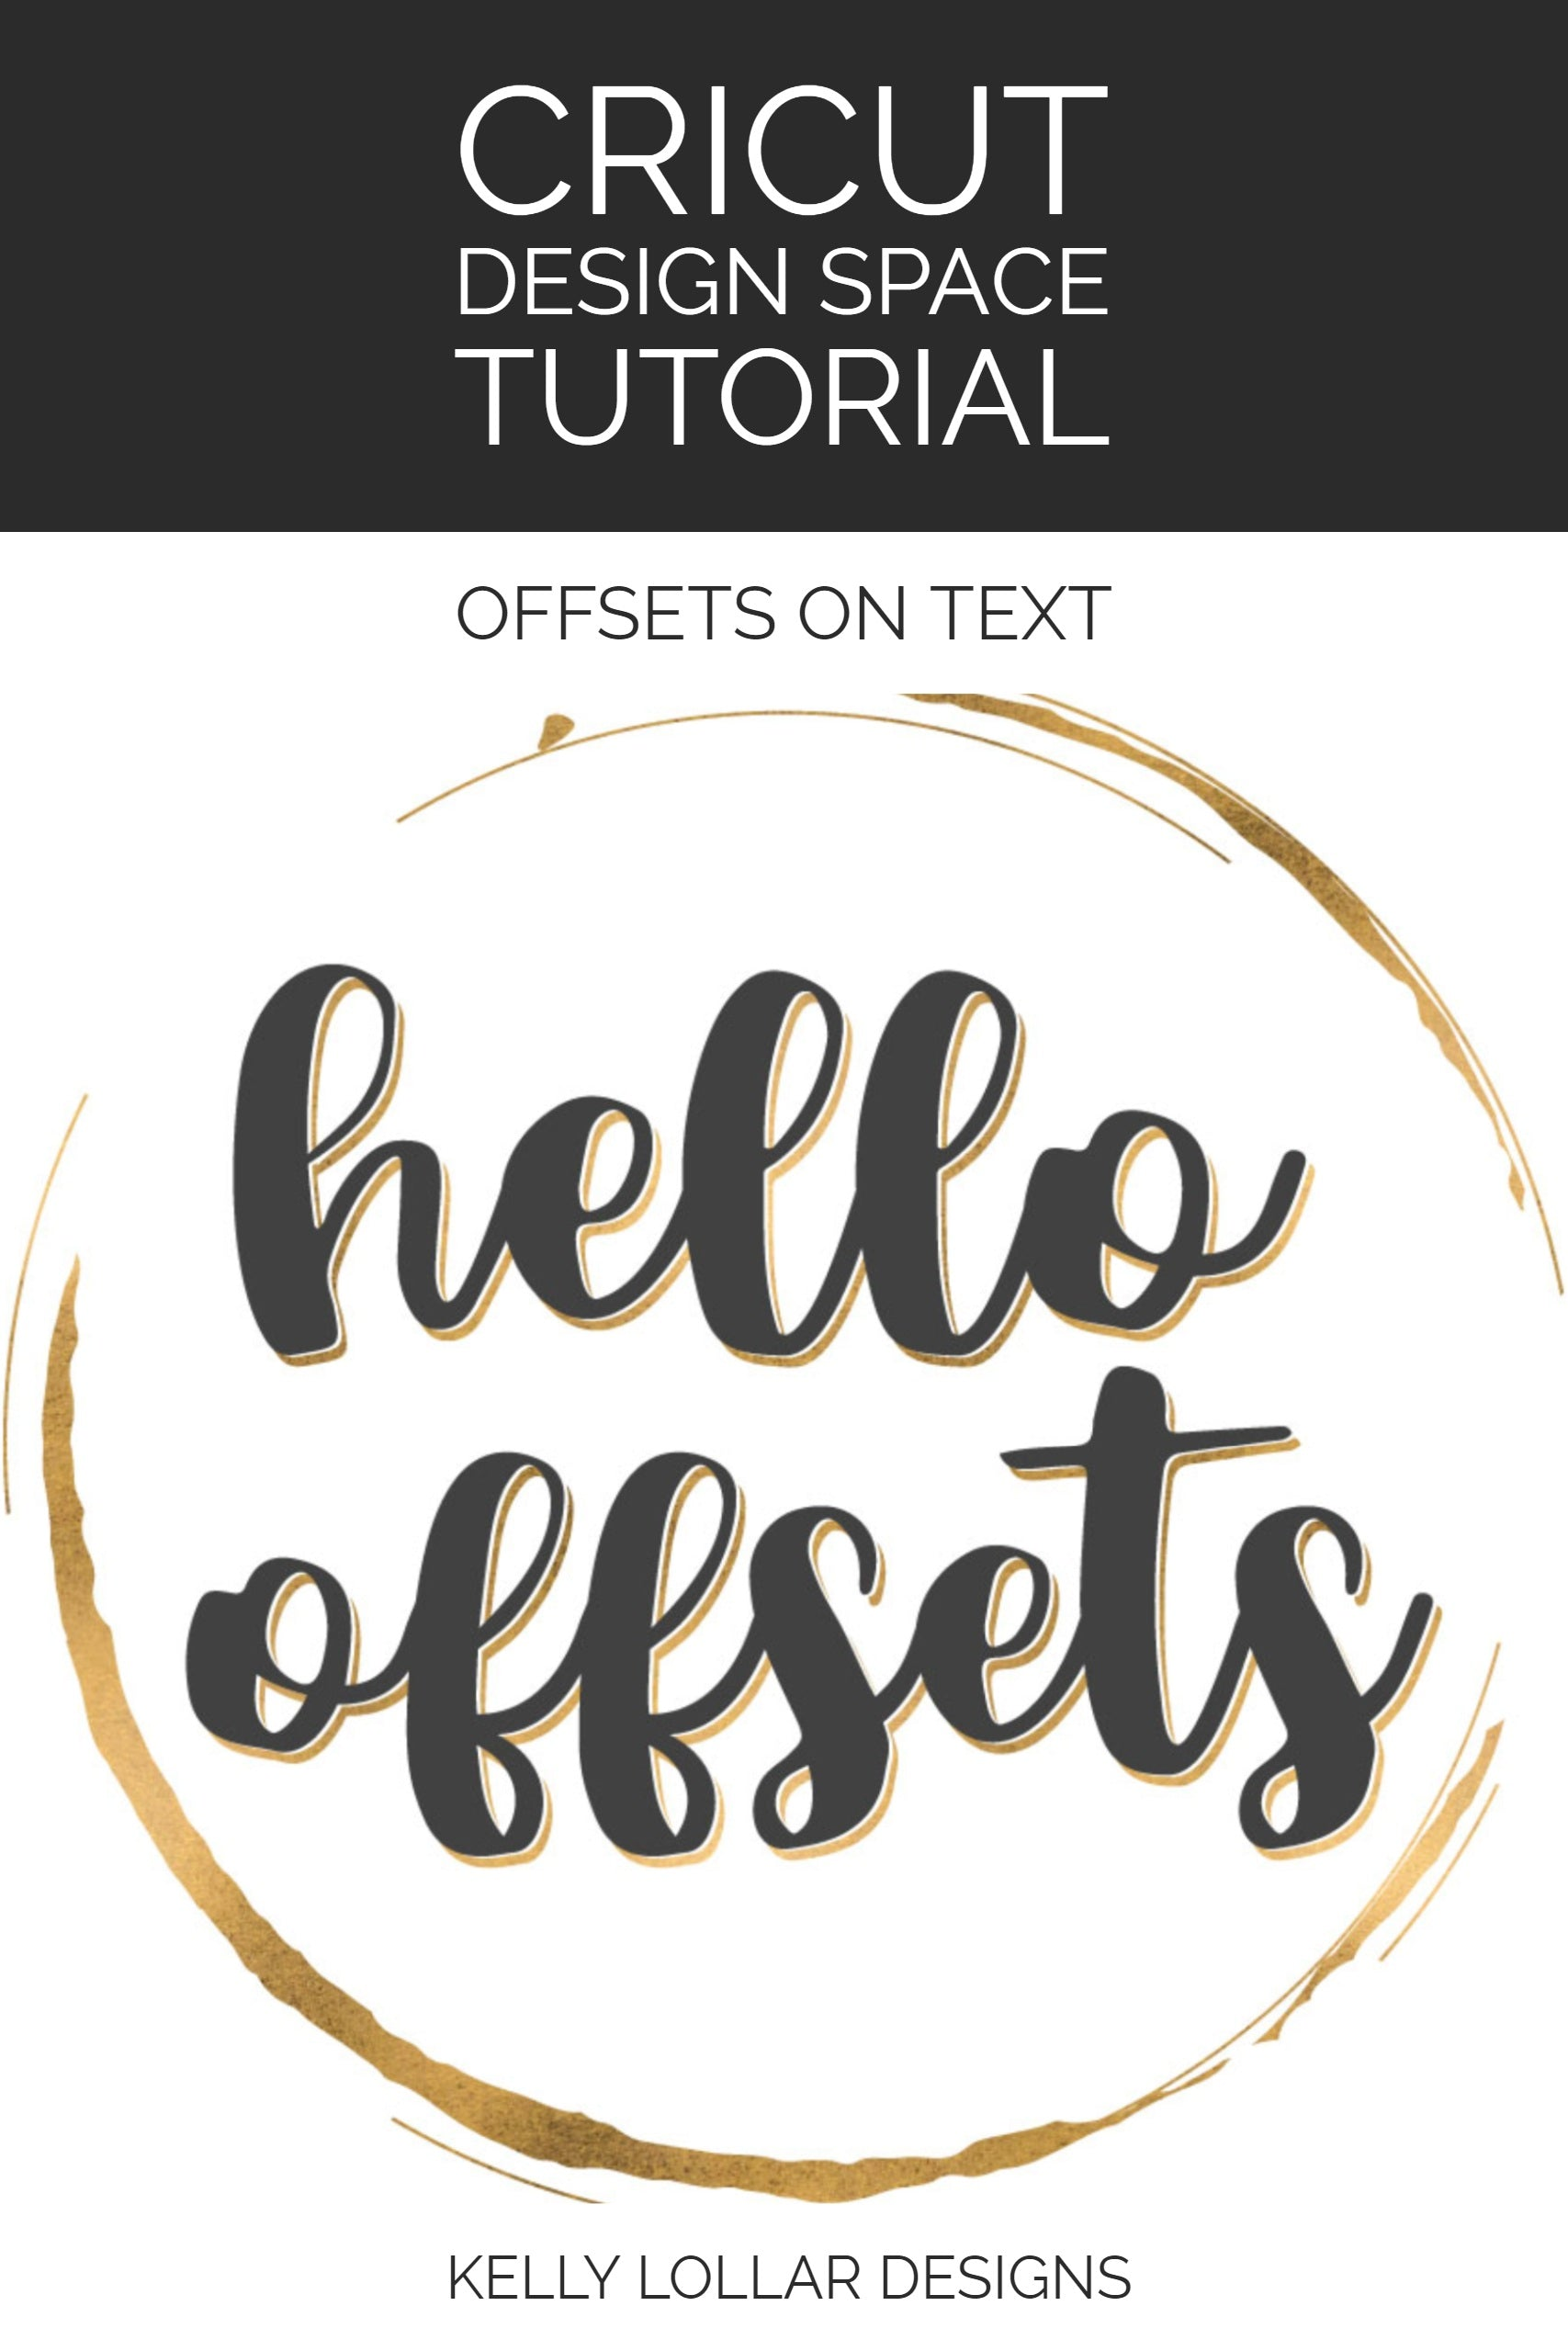 Cricut Design Space Tutorial - Creating Offsets on Text | Kelly Lollar Designs